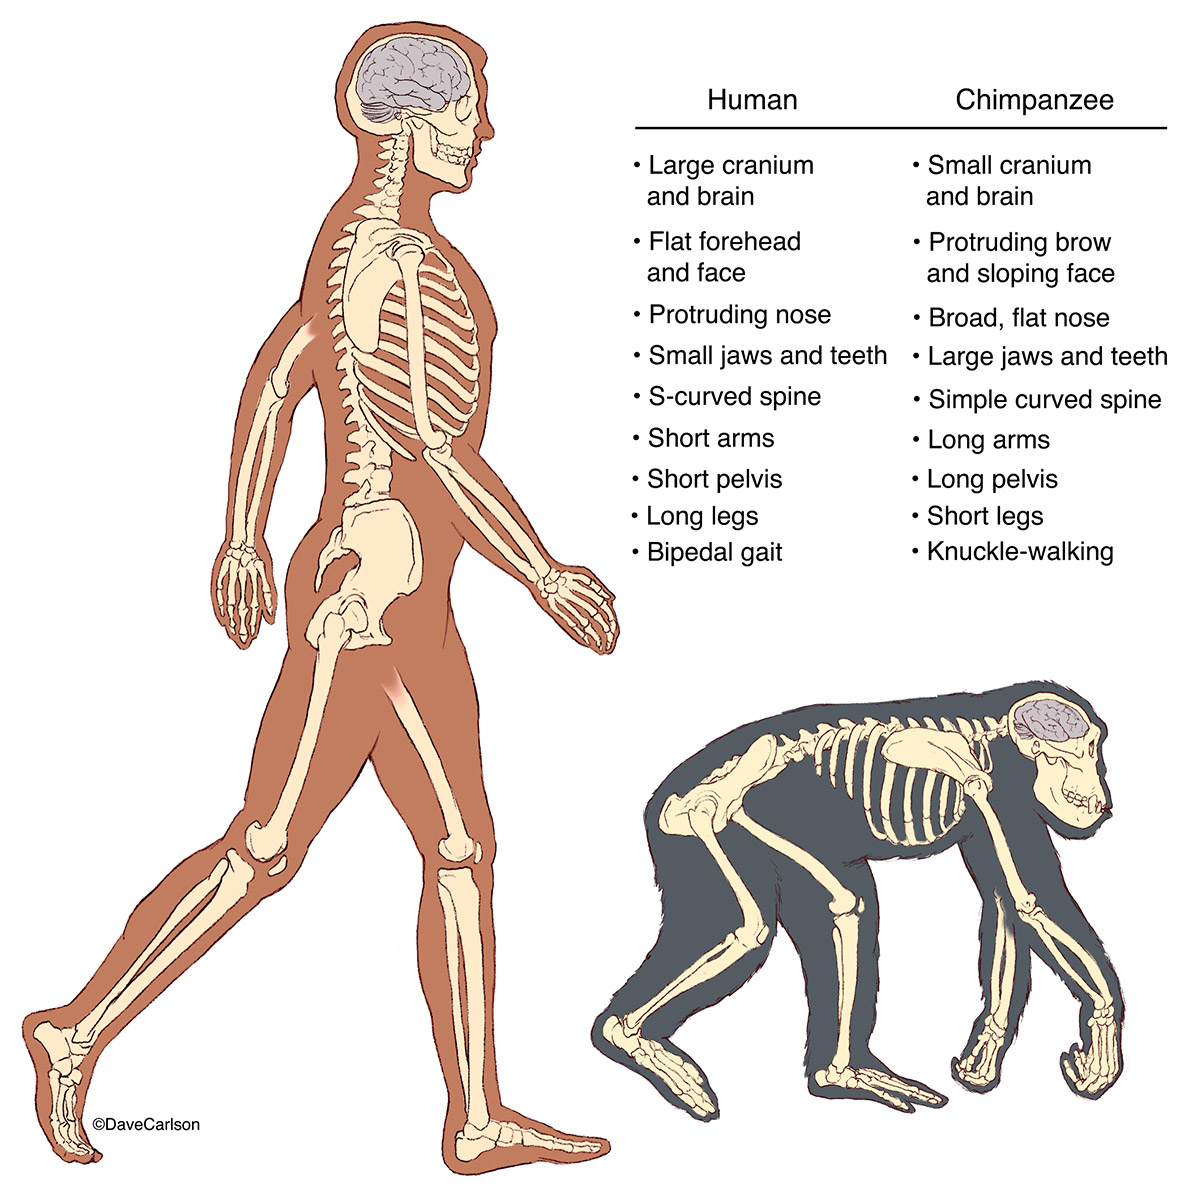 Illustration comparing human and chimp skeletal structure and posture.